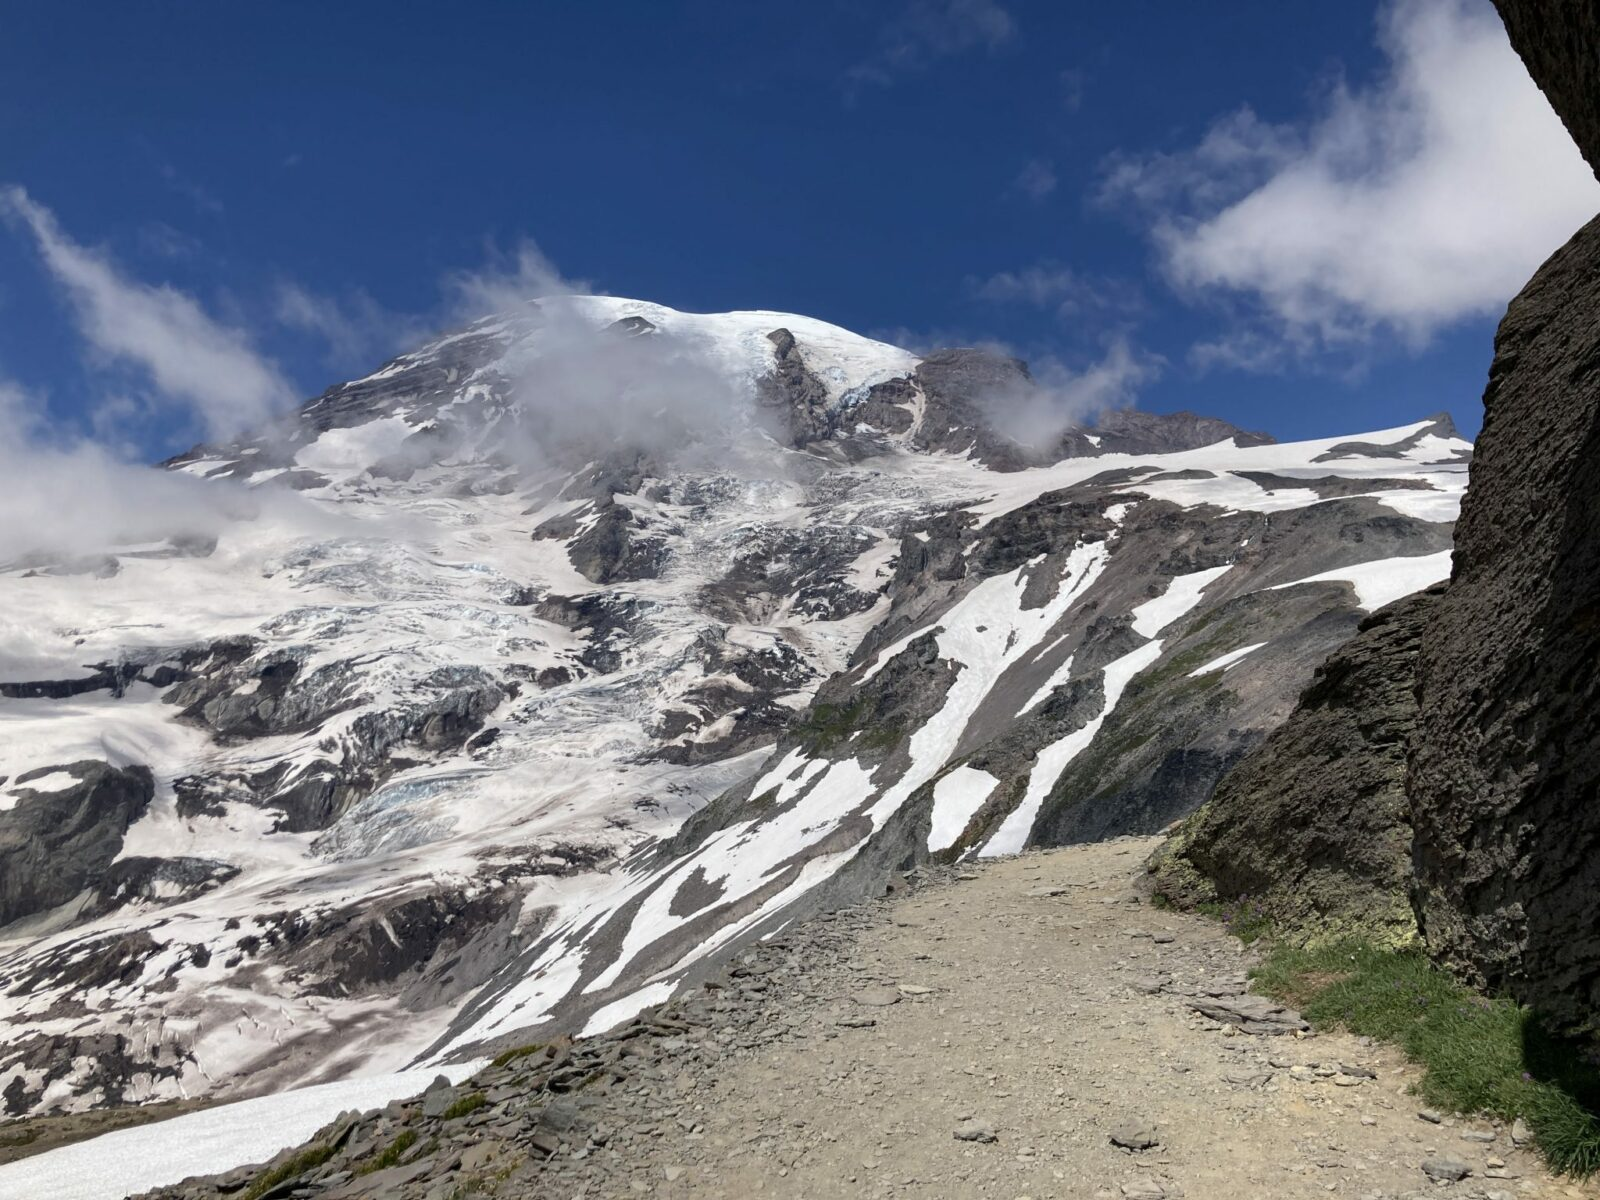 Tahoma or Mt Rainier seen from the Skyline Trail. There is a trail in the foreground and the ice and snow covered mountain rises behind with a few wispy clouds around it on an otherwise clear day. Mt Rainier is a great addition to any seattle itinerary